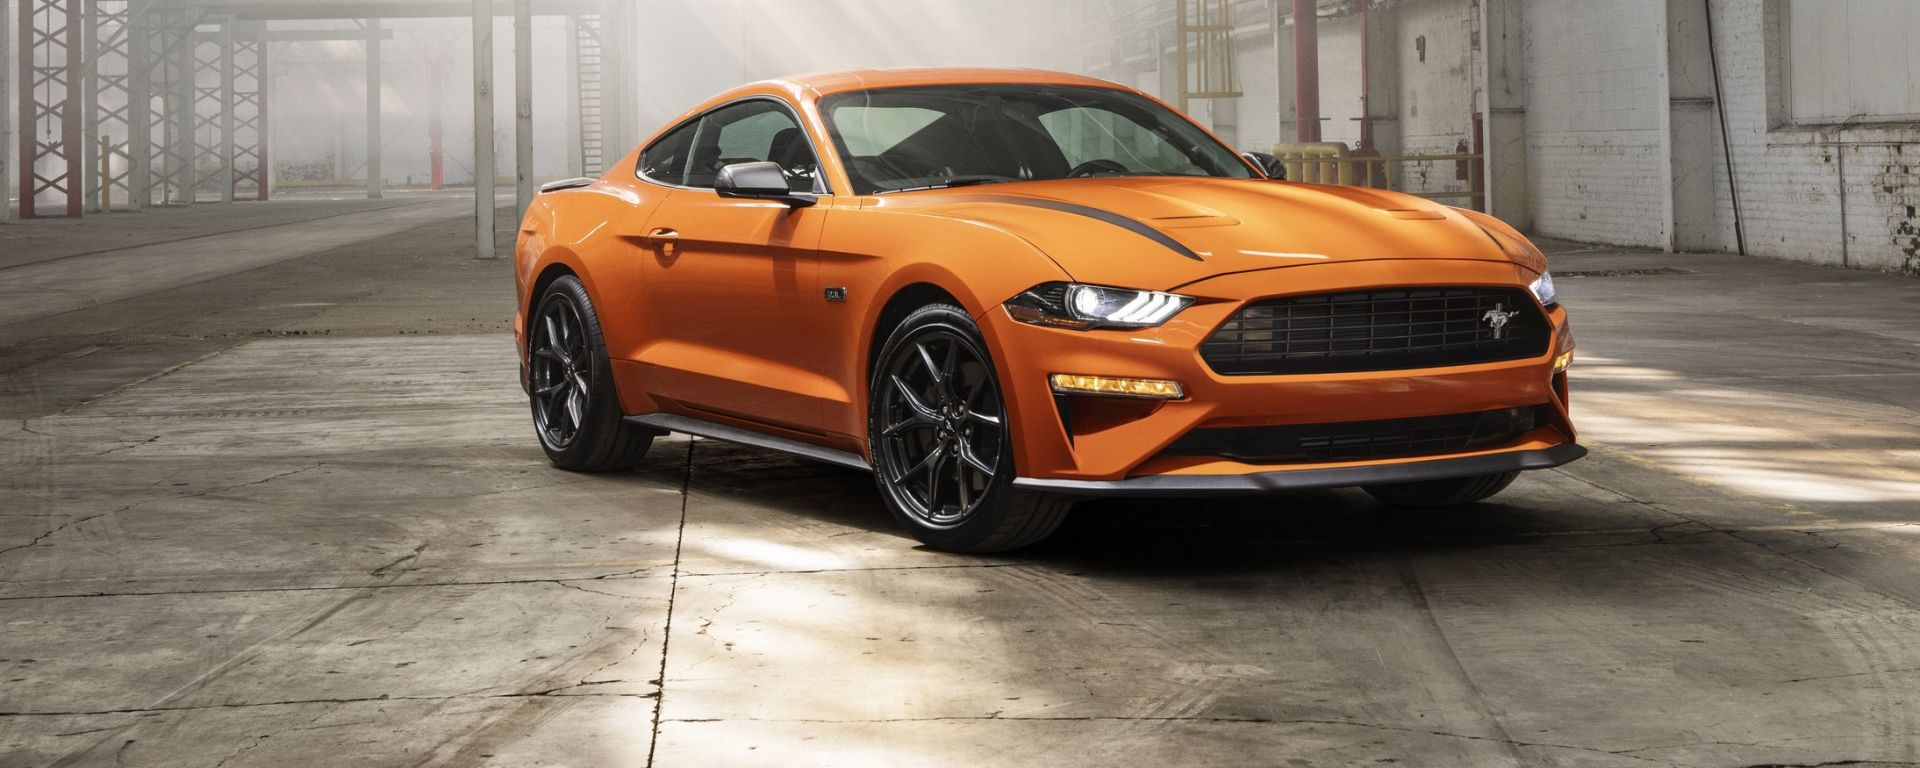 Ford Mustang55 Edition